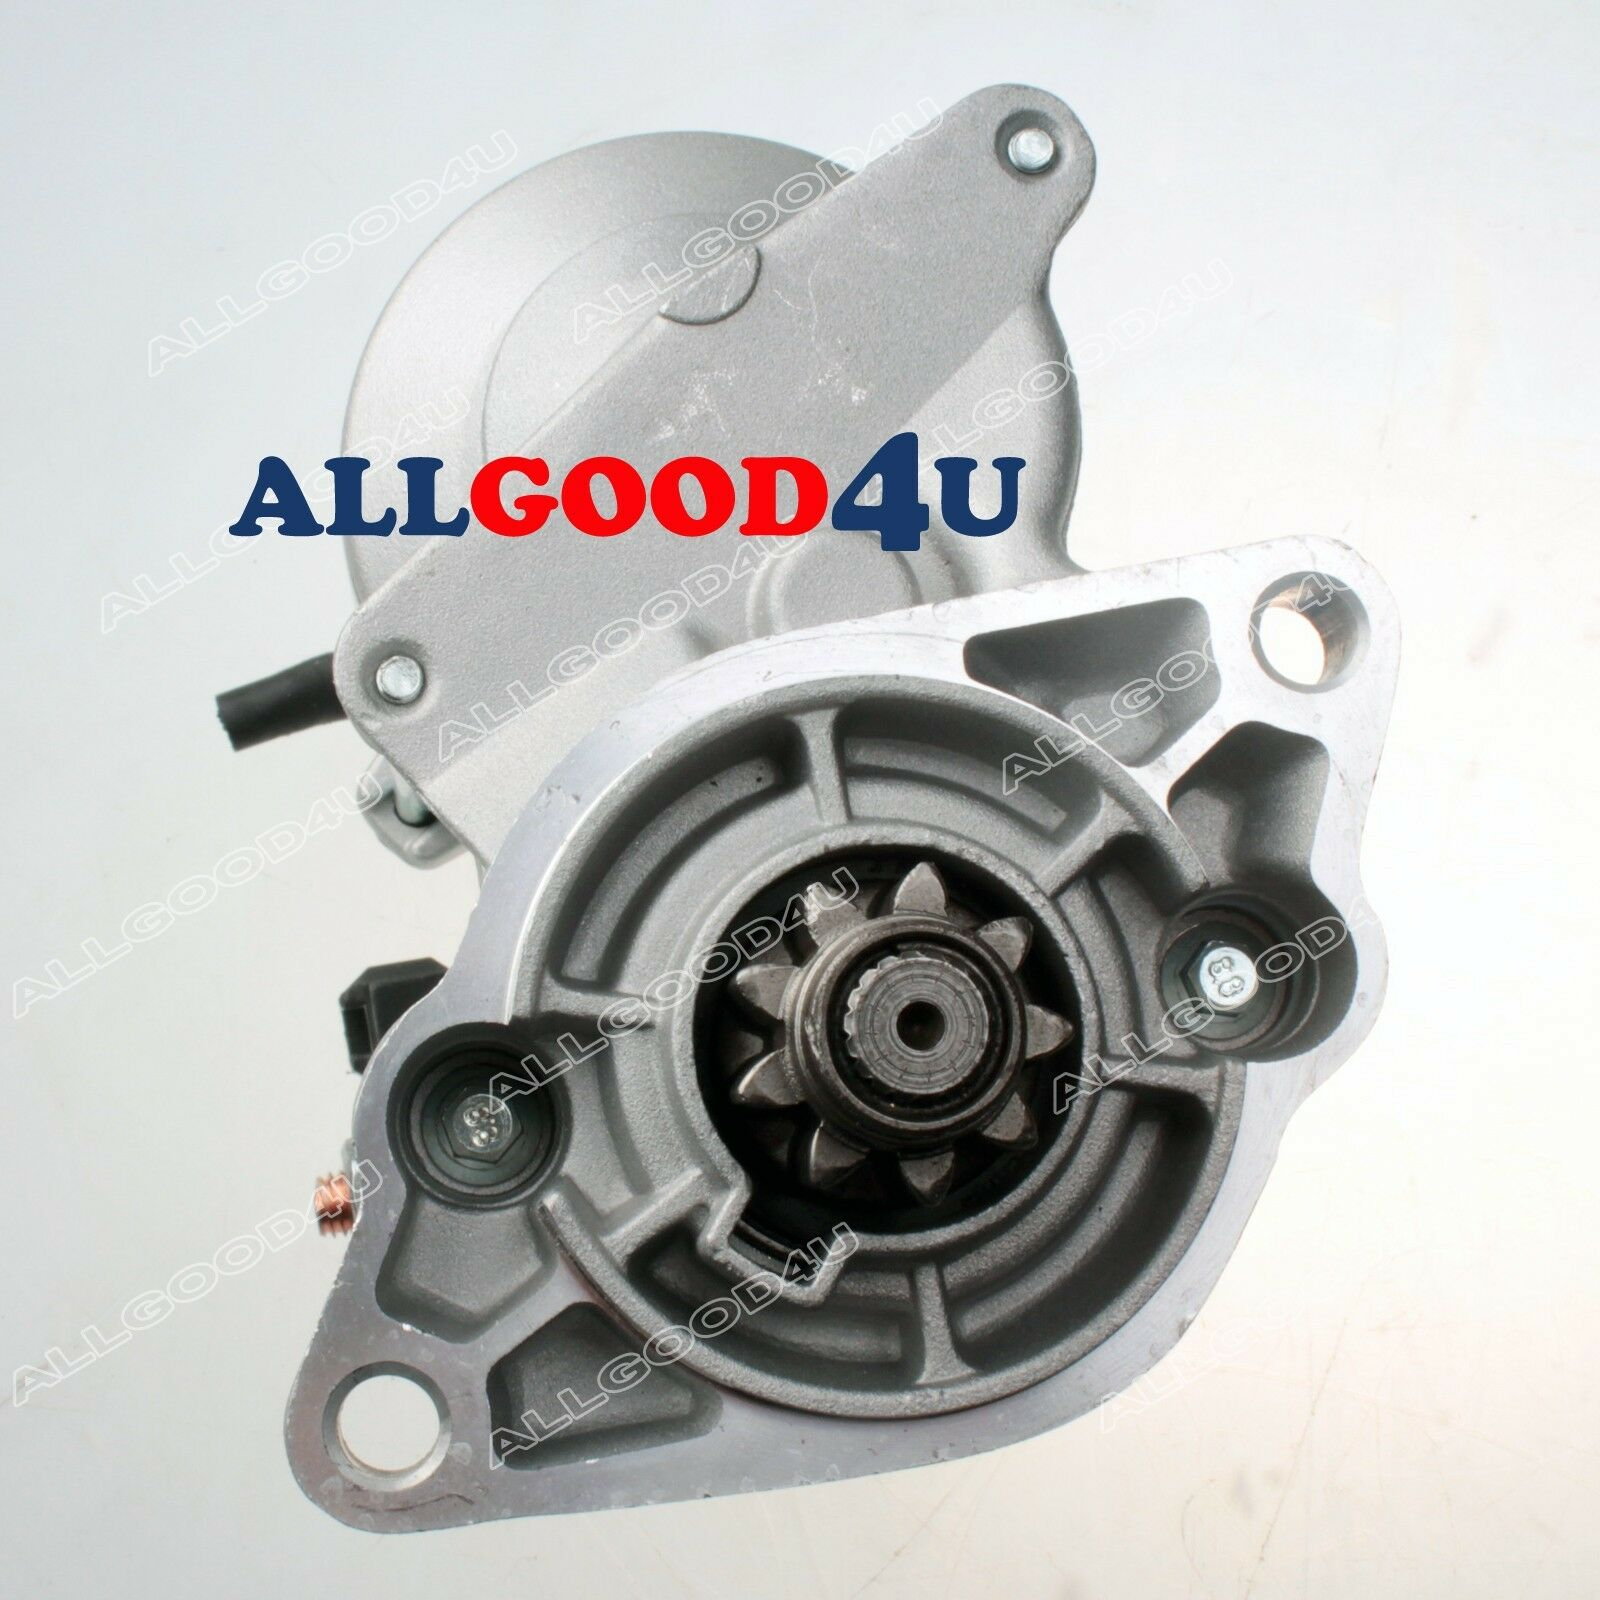 NEW Starter for KUBOTA CASE 19269-63010 19269-63011 19269-63012 19269-63013 NEW